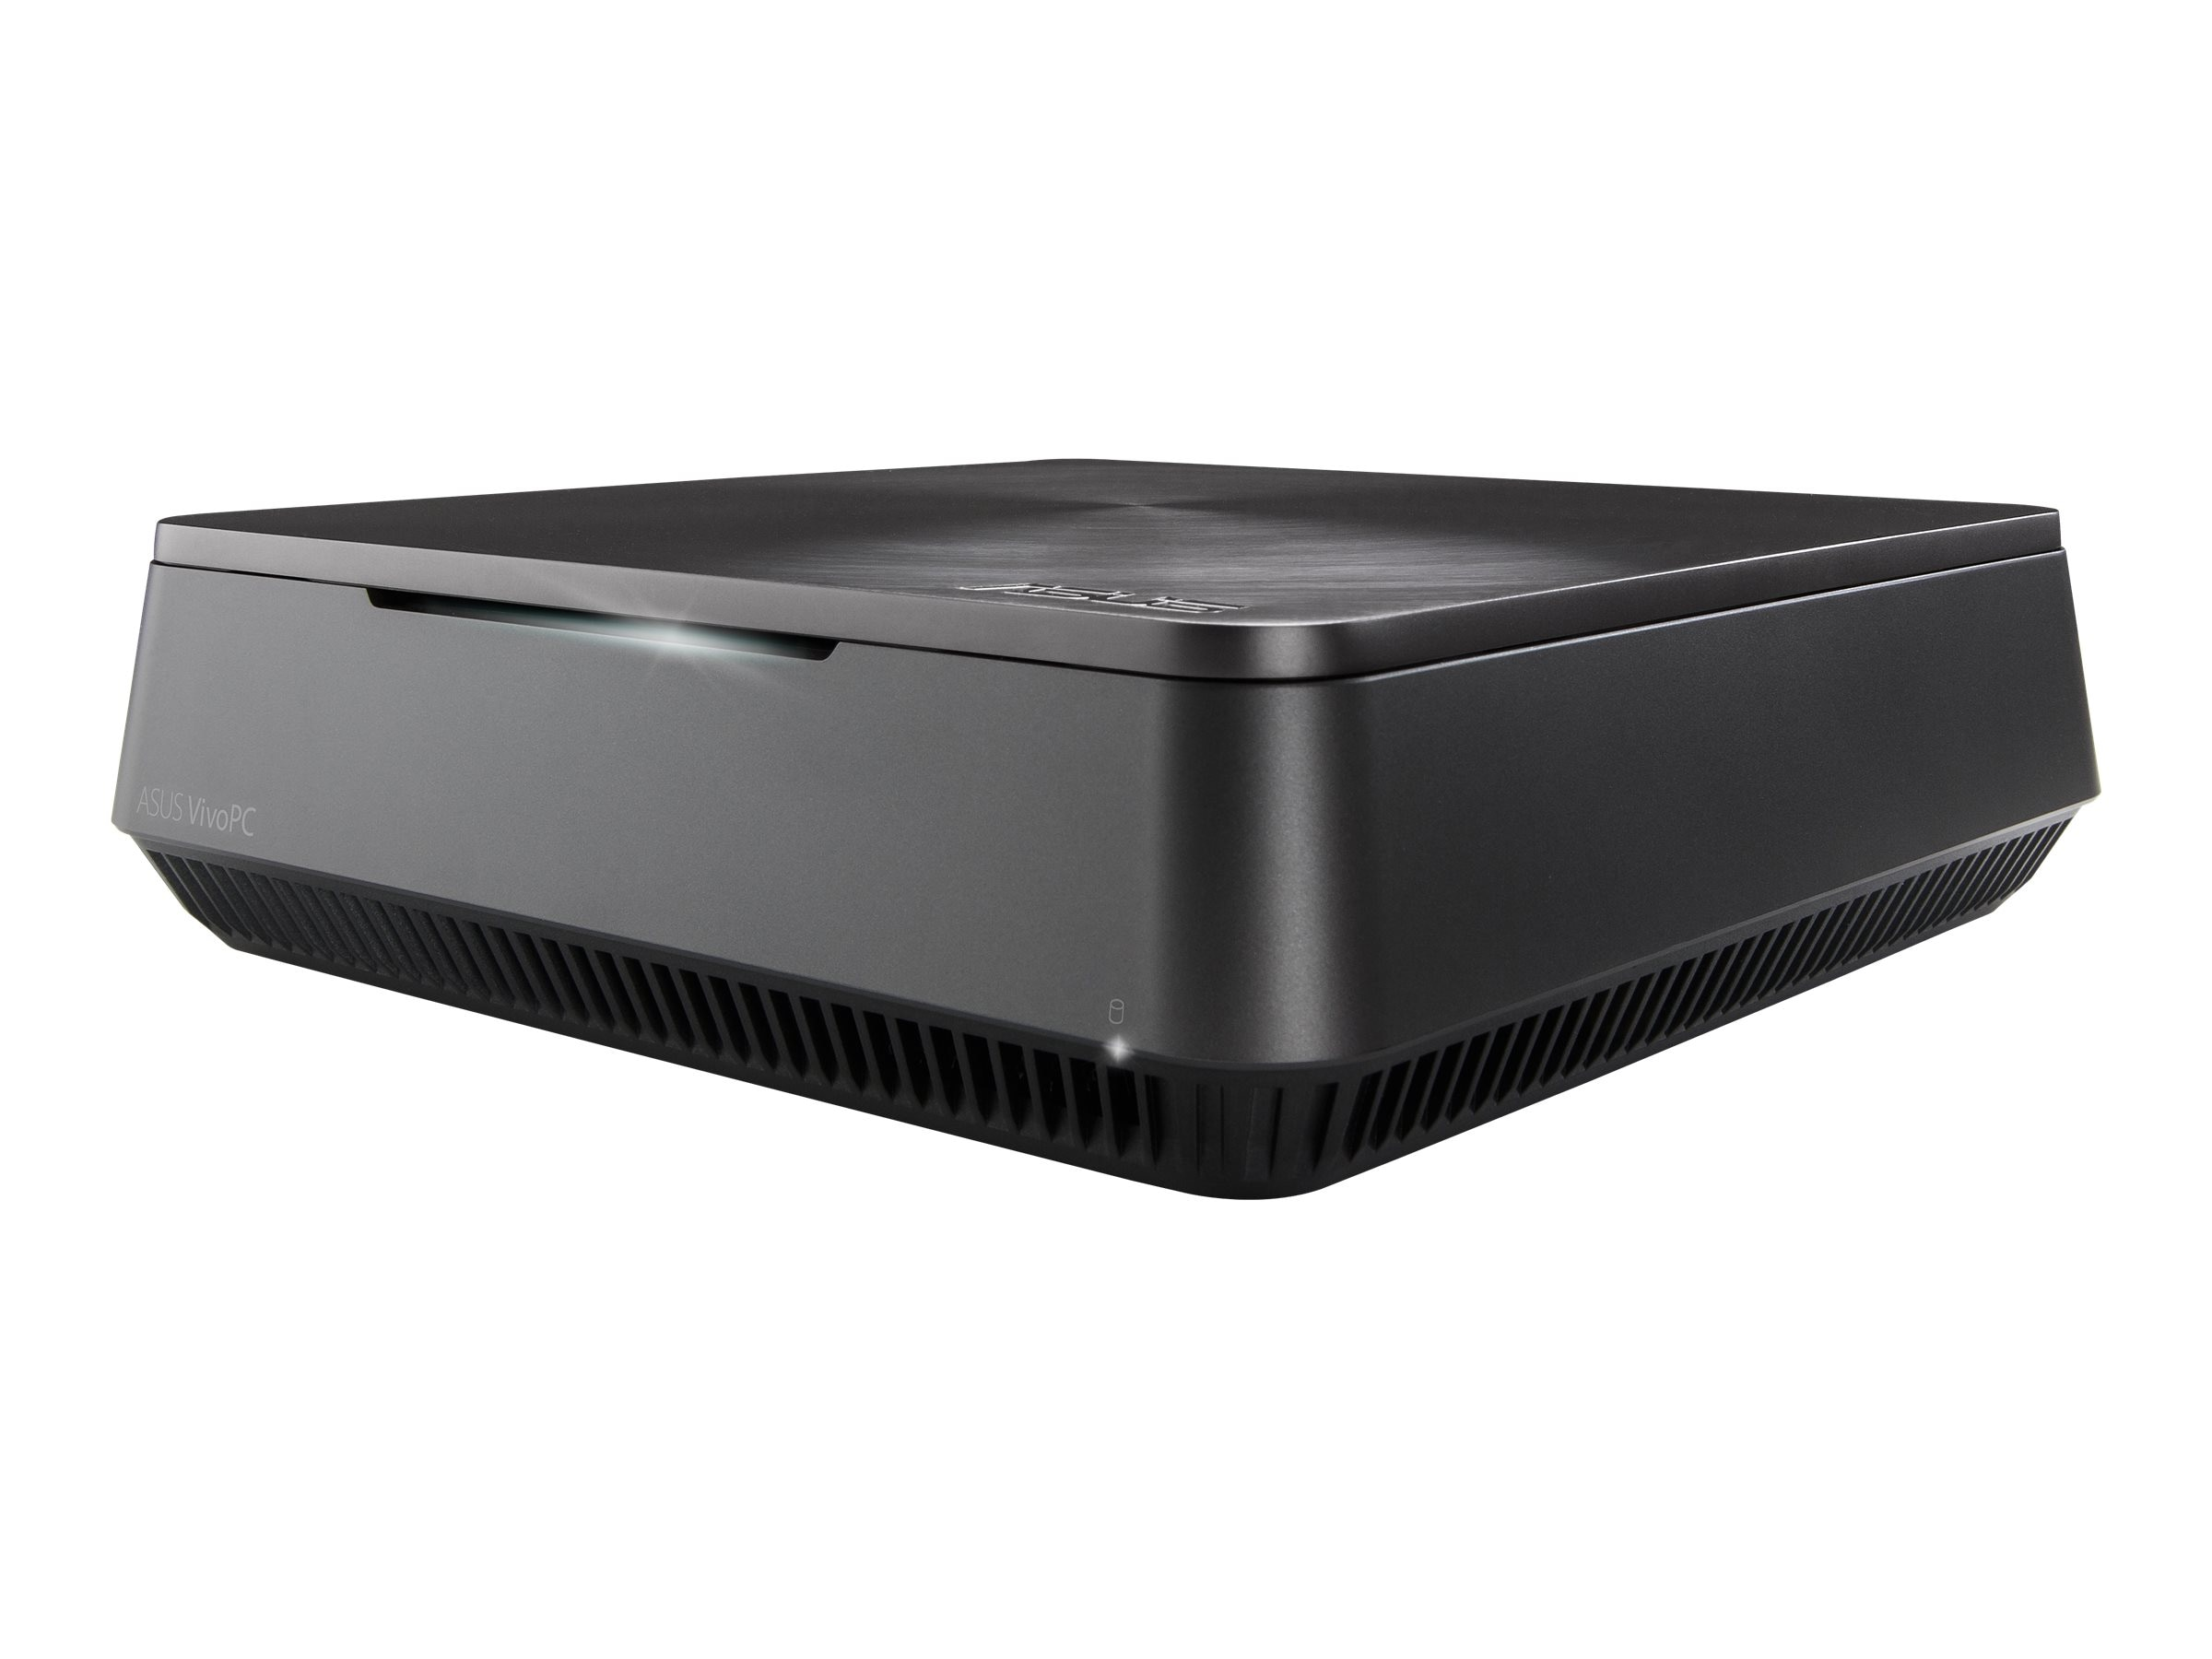 Asus VivoPC VM62-G218Z Mini Core i5-4210U 8GB 1TB GeForce 820M ac BT W1064, VM62-G218Z, 30788521, Desktops